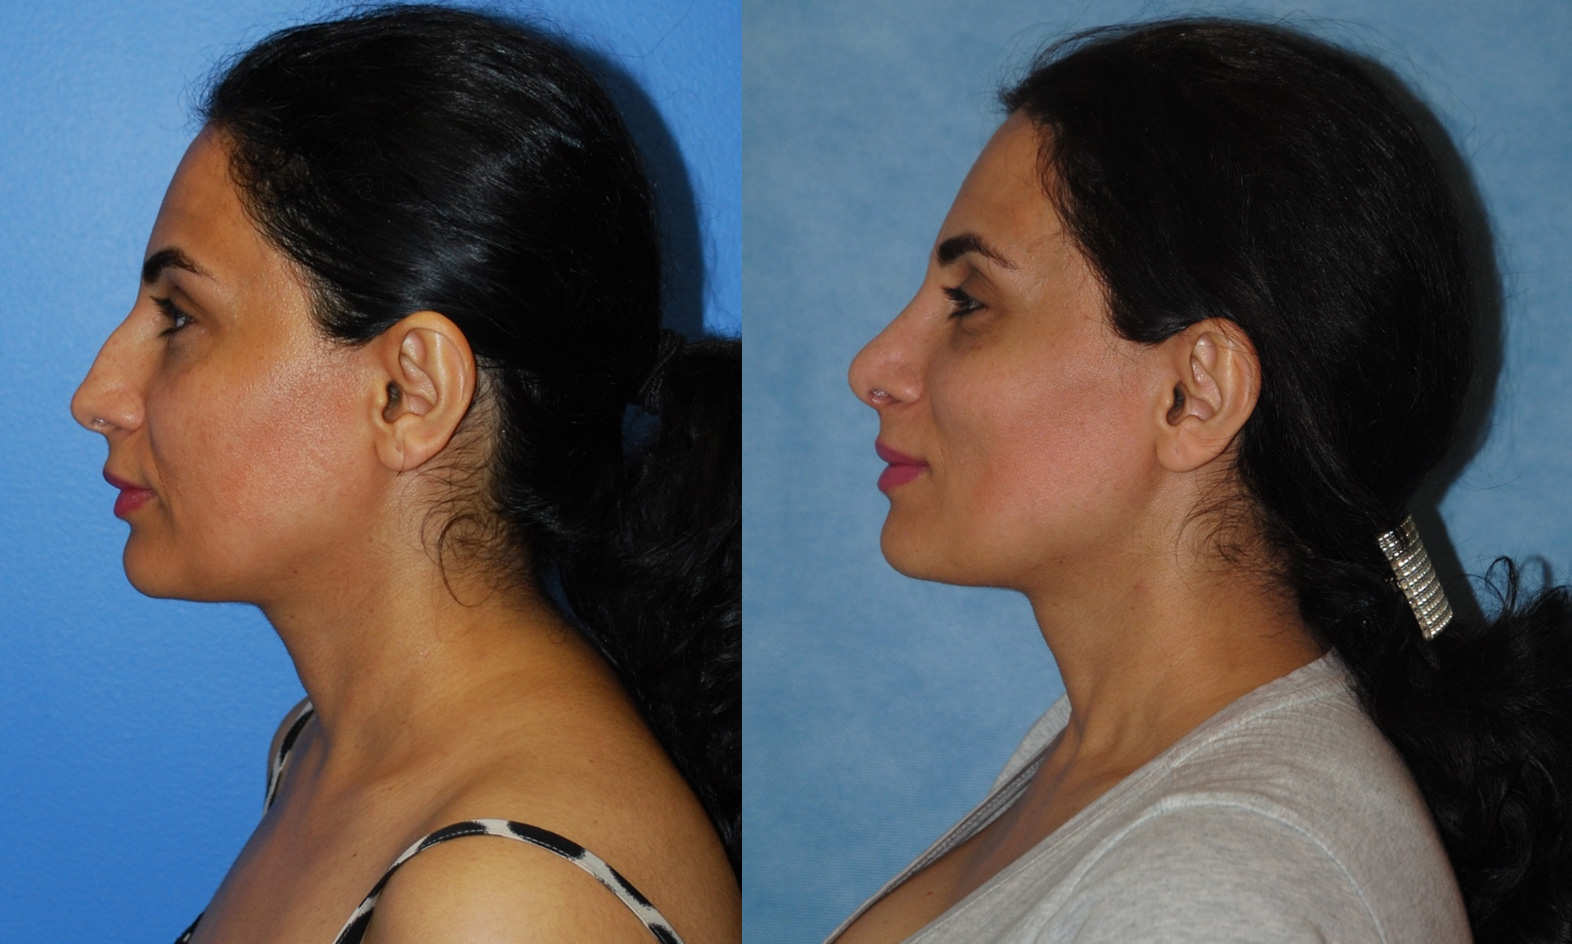 Middle Eastern Primary Rhinoplasty to Correct Dorsal Hump